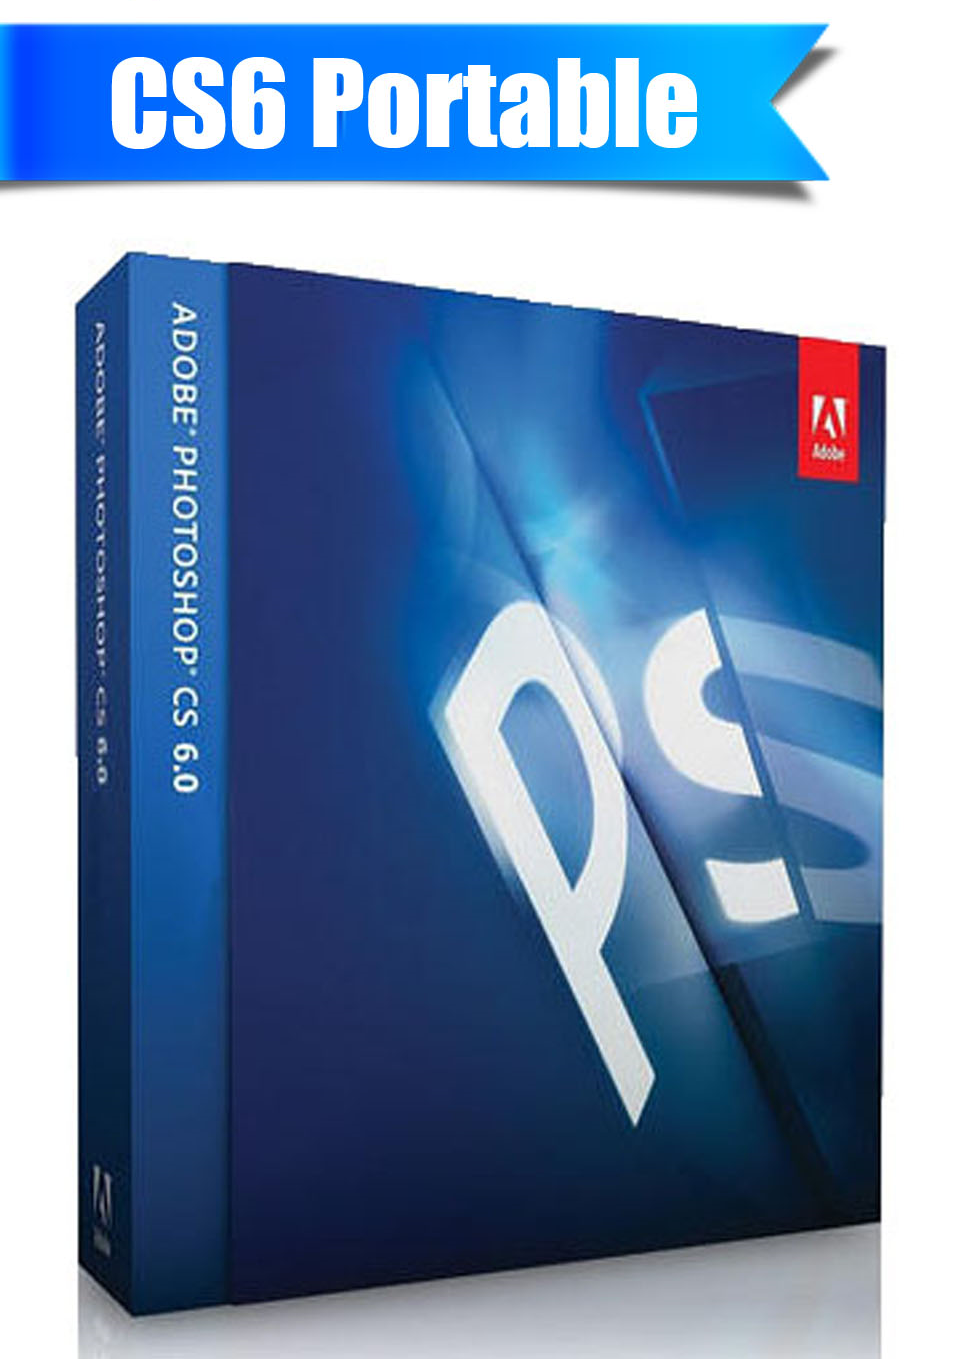 Photoshop Cs6 Extended Portable Yxt Adobe 130 Tw En Winrar